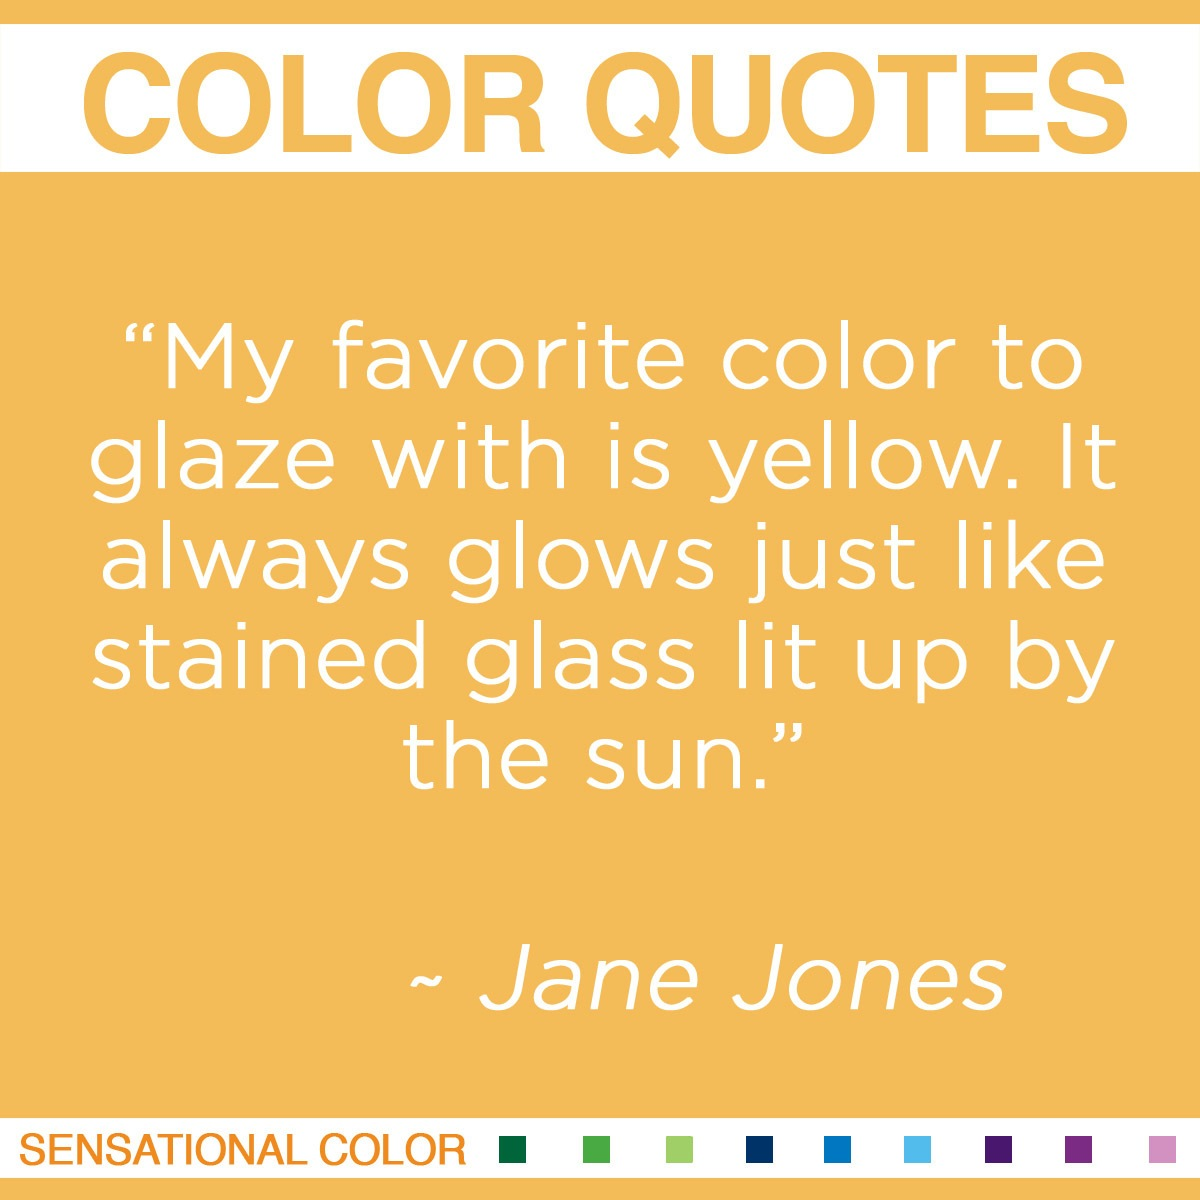 """My favorite color to glaze with is yellow. It always glows just like stained glass lit up by the sun."" - Jane Jones"